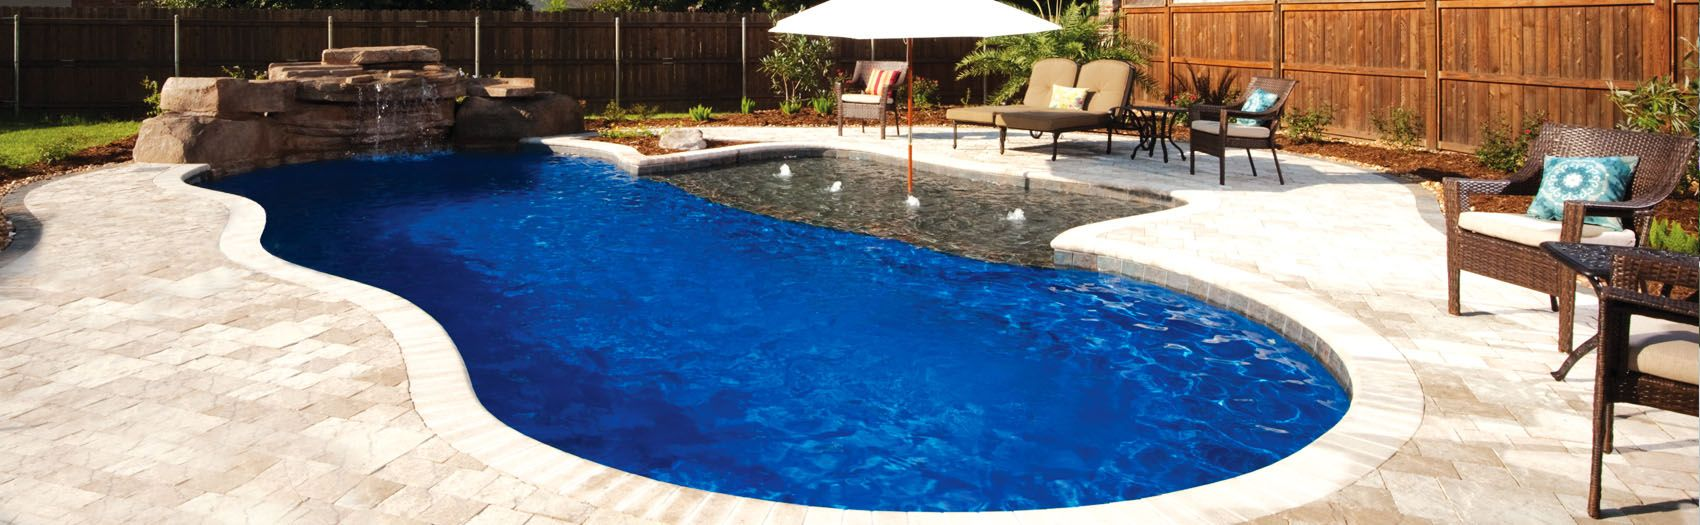 1000 ideas about pool prices on pinterest swimming pool prices fiberglass swimming pools and swimming pool